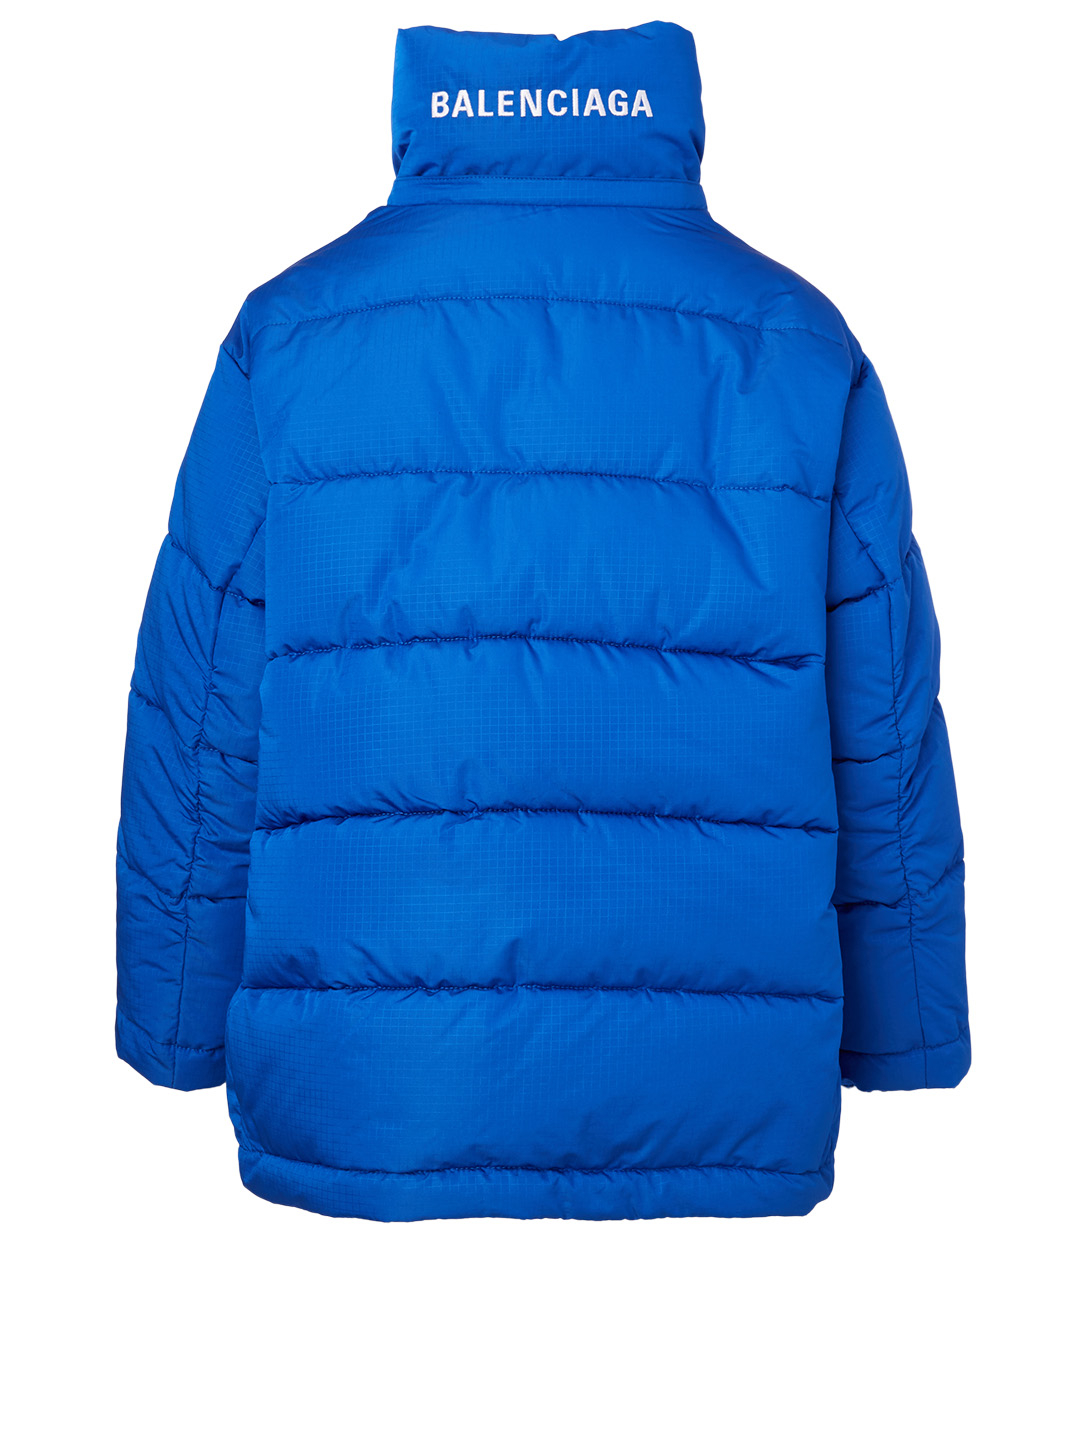 BALENCIAGA New Swing Puffer Jacket Women's Blue